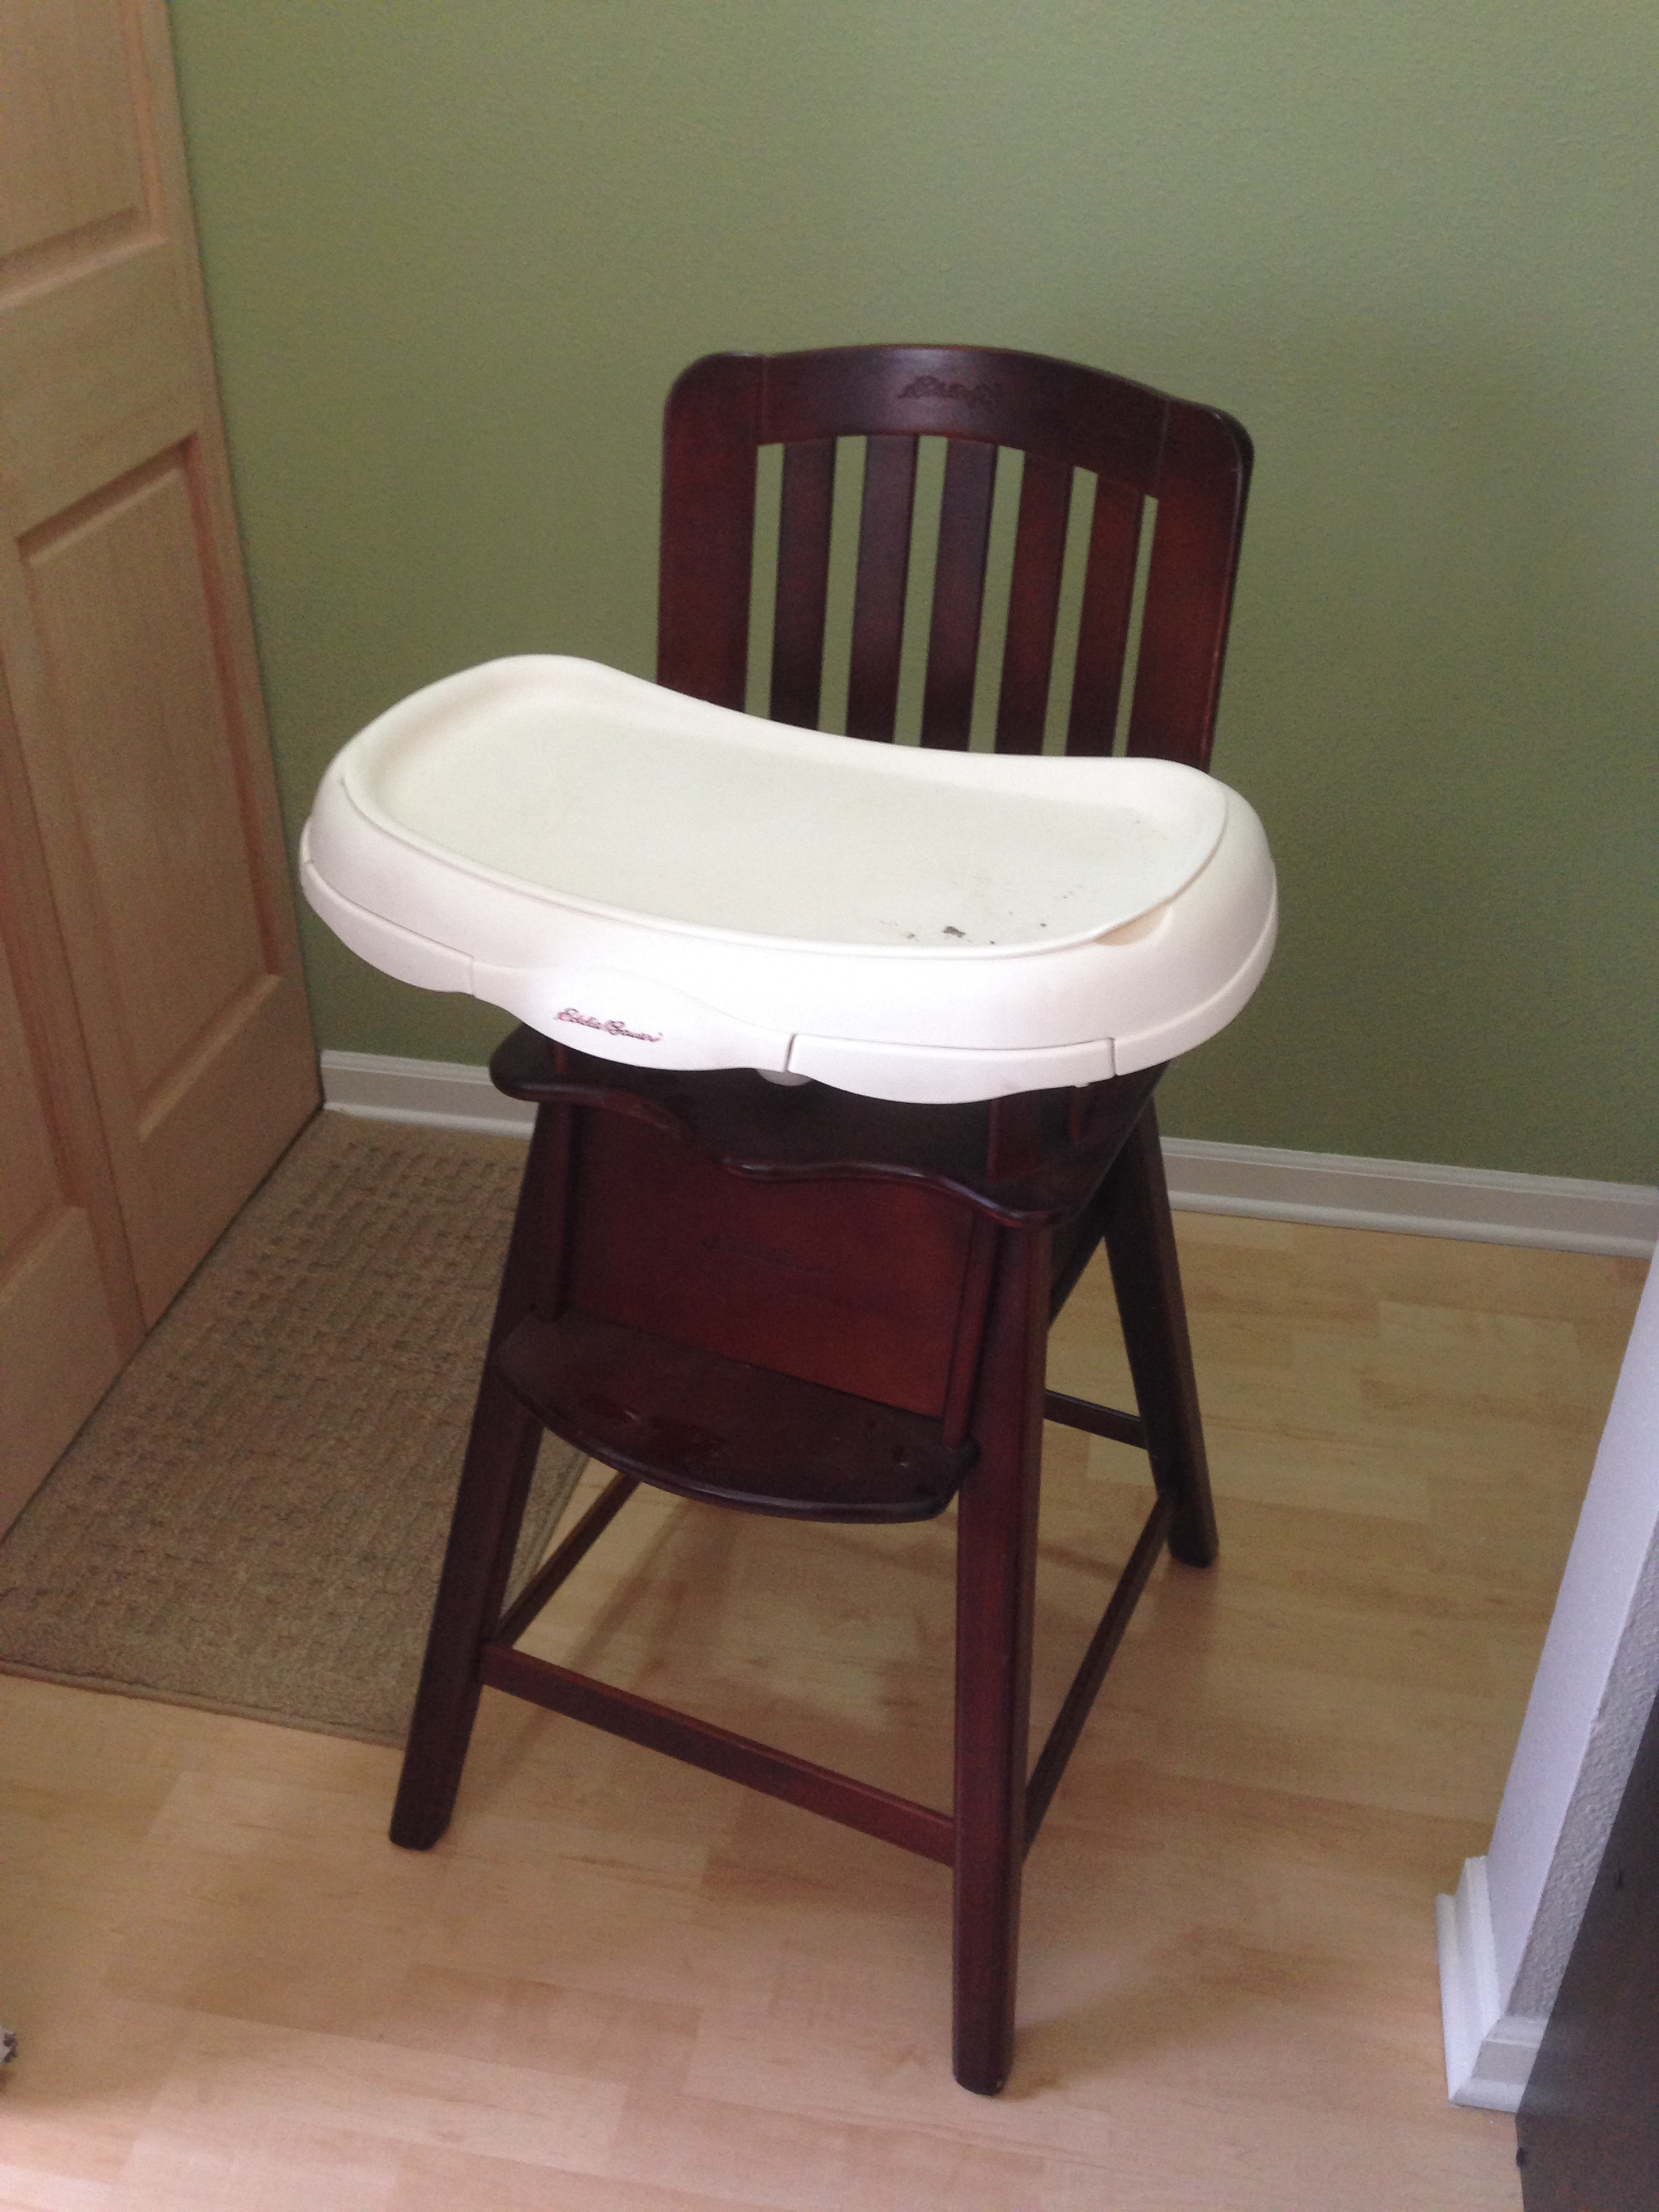 Prodigious We Started Out Using Same Zinsser Stripfast Stripper That Weused When We Did Room It Work Nearly As Well Asit Did Refinished Chair Days August baby Eddie Bauer High Chair